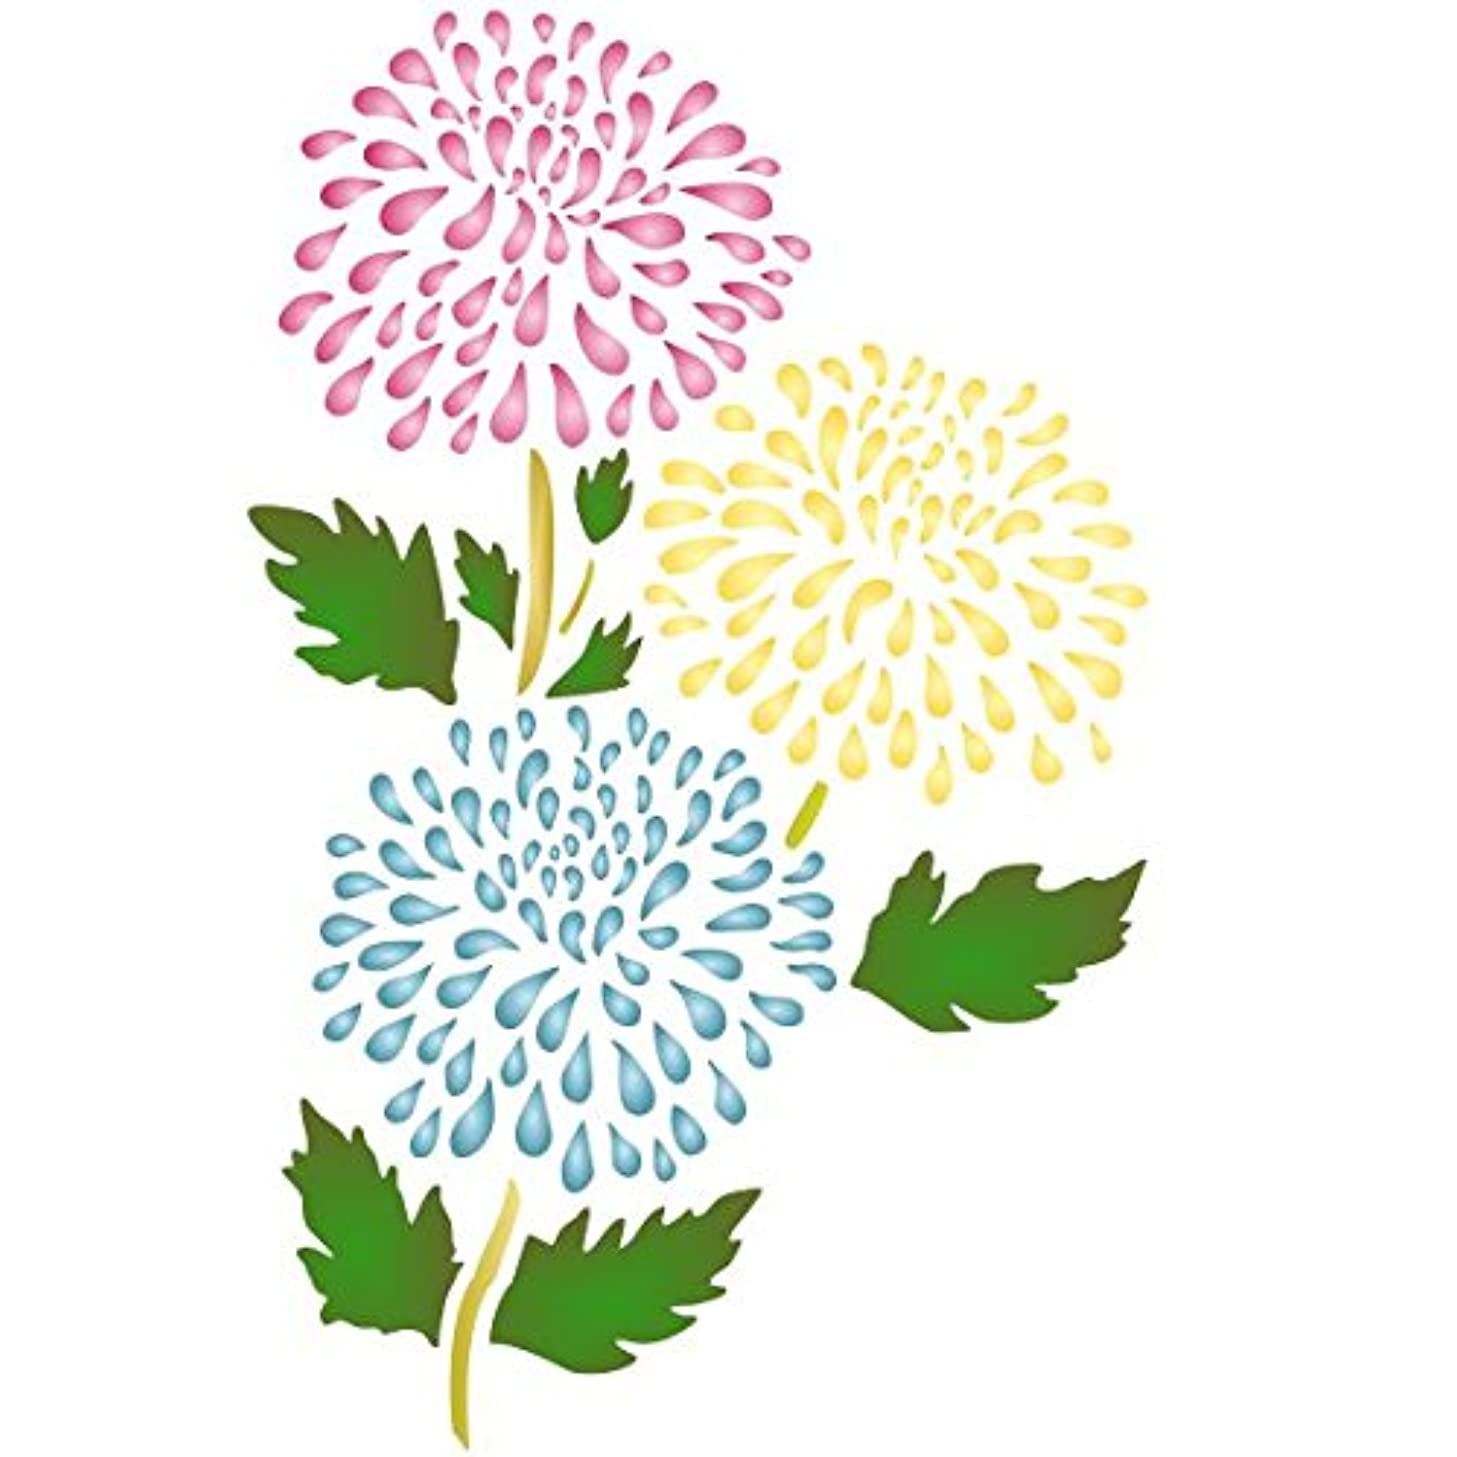 """Chrysanthemum Stencil - (size 6""""w x 9.5""""h) Reusable Wall Stencils for Painting - Best Quality Mum Wall Flower Stencil Ideas - Use on Walls, Floors, Fabrics, Glass, Wood, and More… oennwf7144567"""